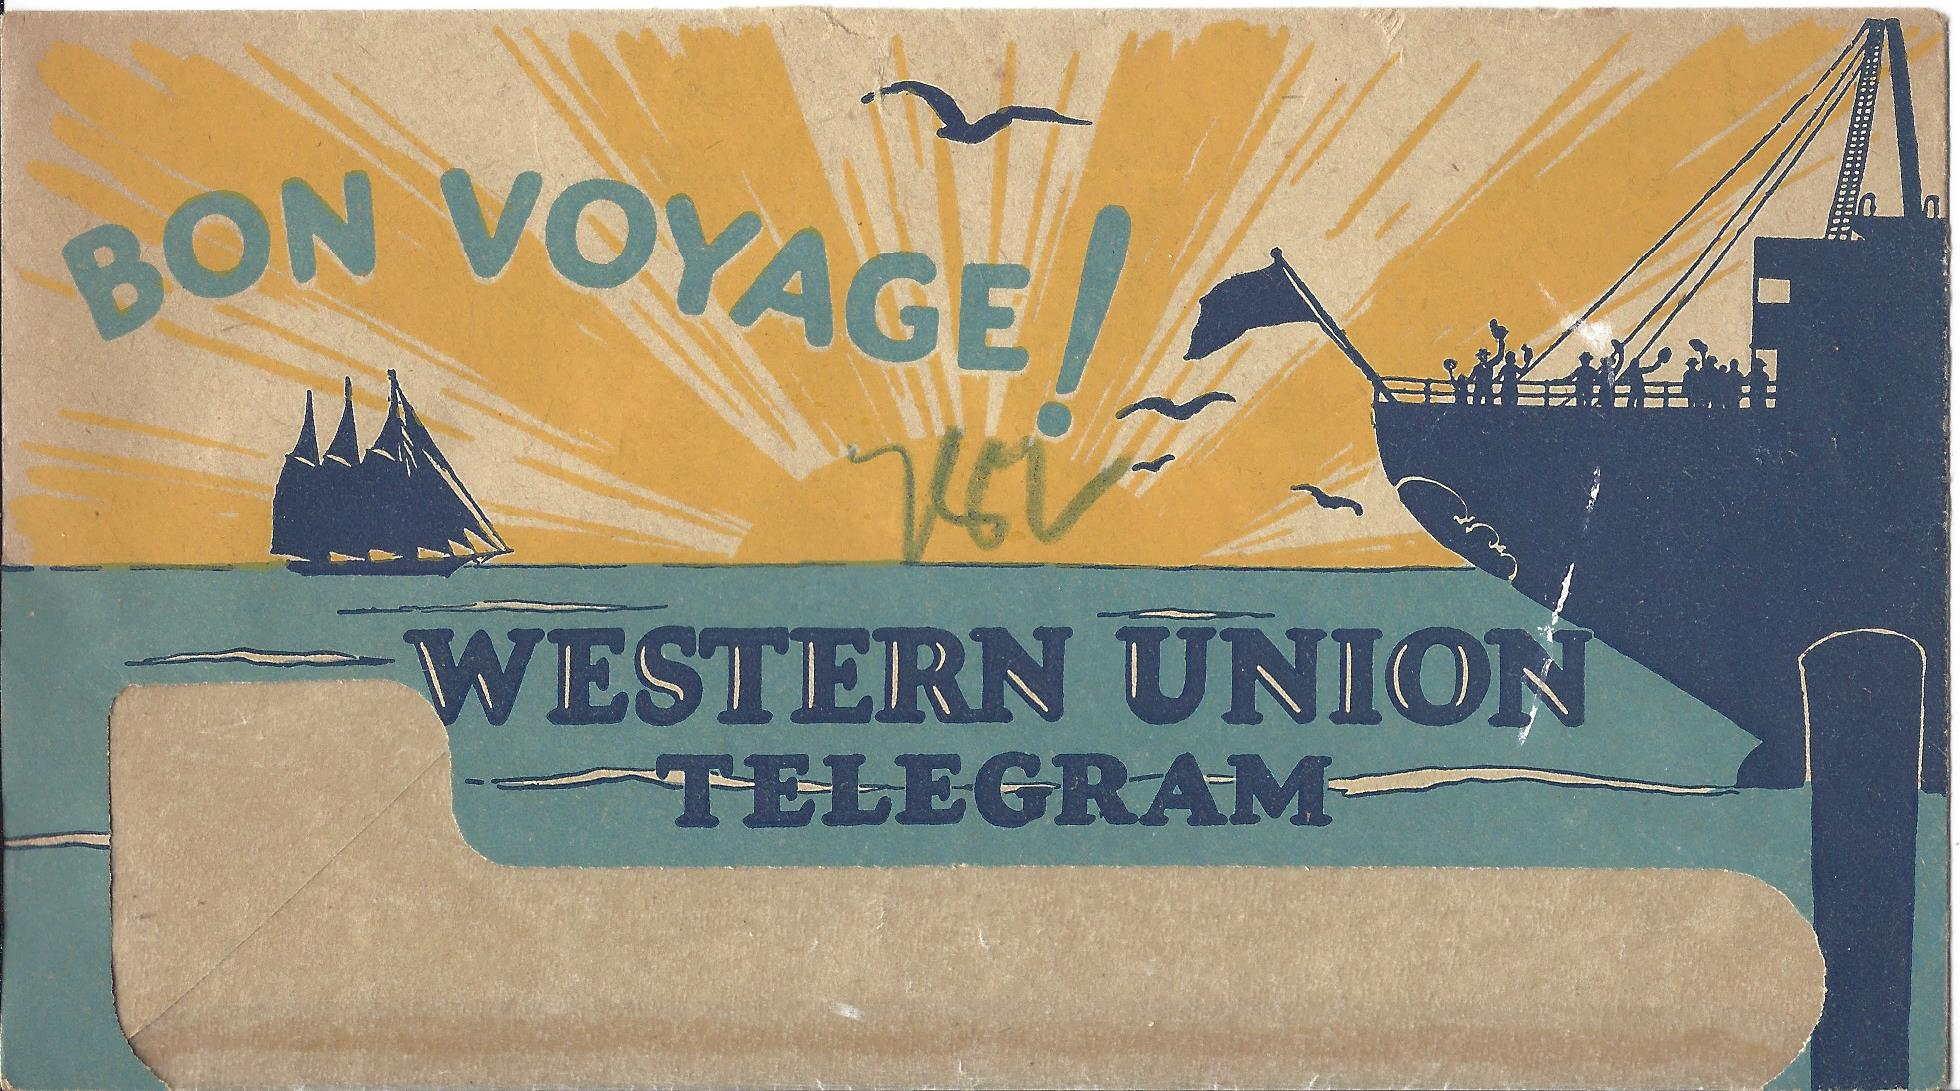 The front of the envelope for a Bon Voyage telegram. Telegrams weren't cheap and were only for special occasions, so the recipients would have been pleased and flattered